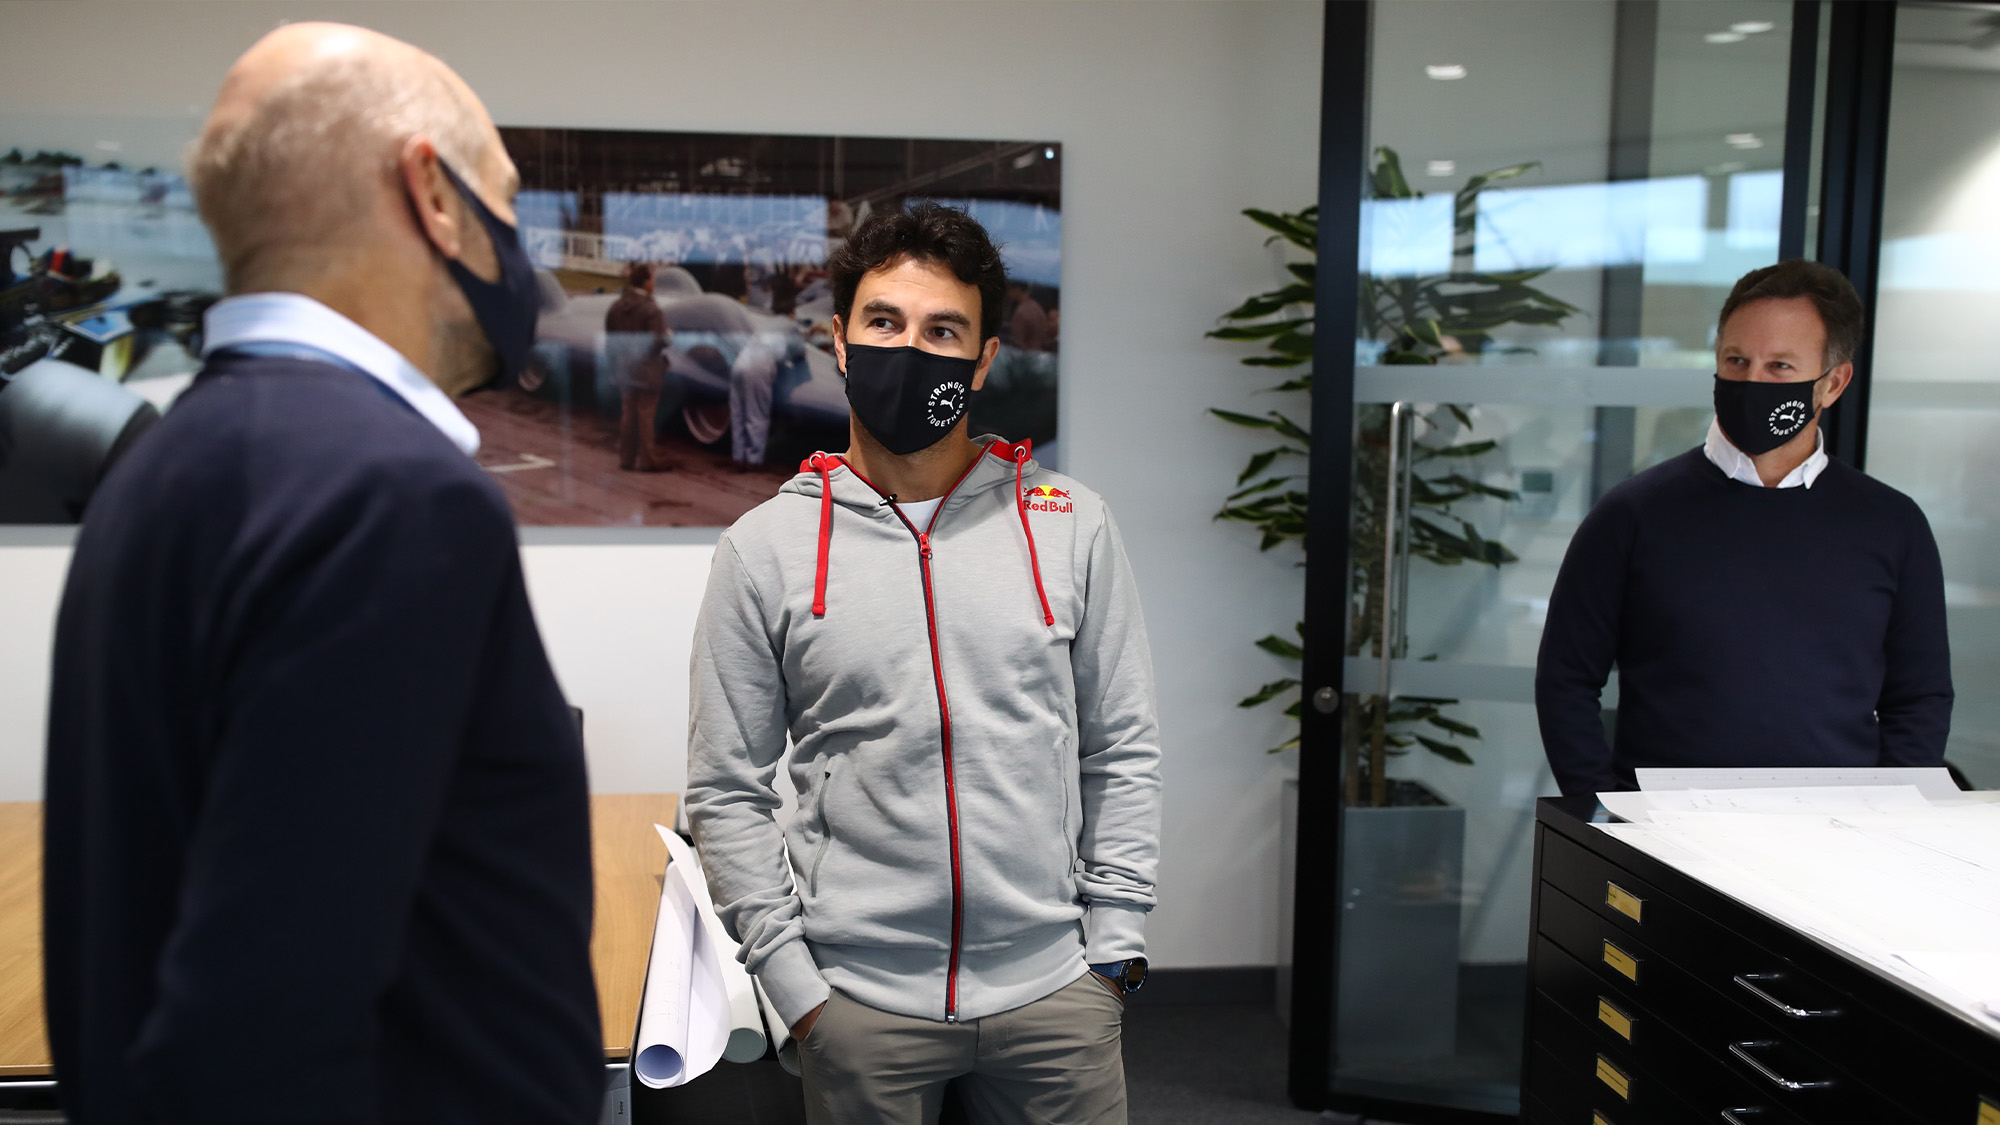 Sergio Perez meets Adrian Newey and Christian Horner at the Red Bull F1 factory in January 2021